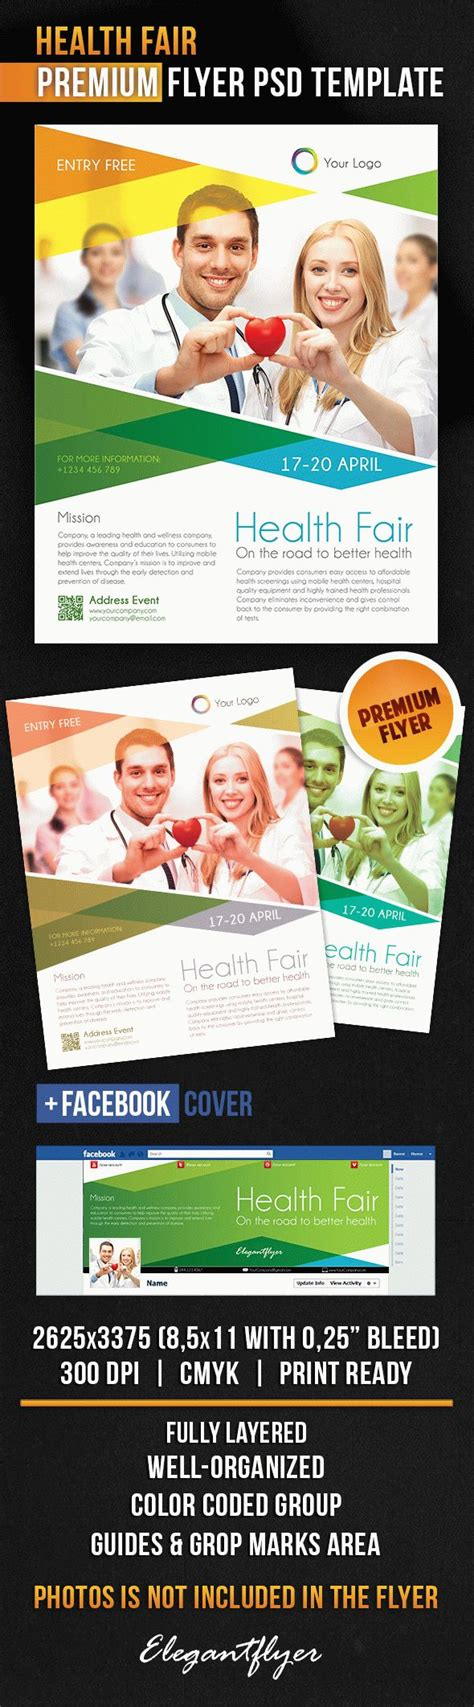 Health Fair Flyer Psd Template By Elegantflyer Wellness Flyer Templates Free